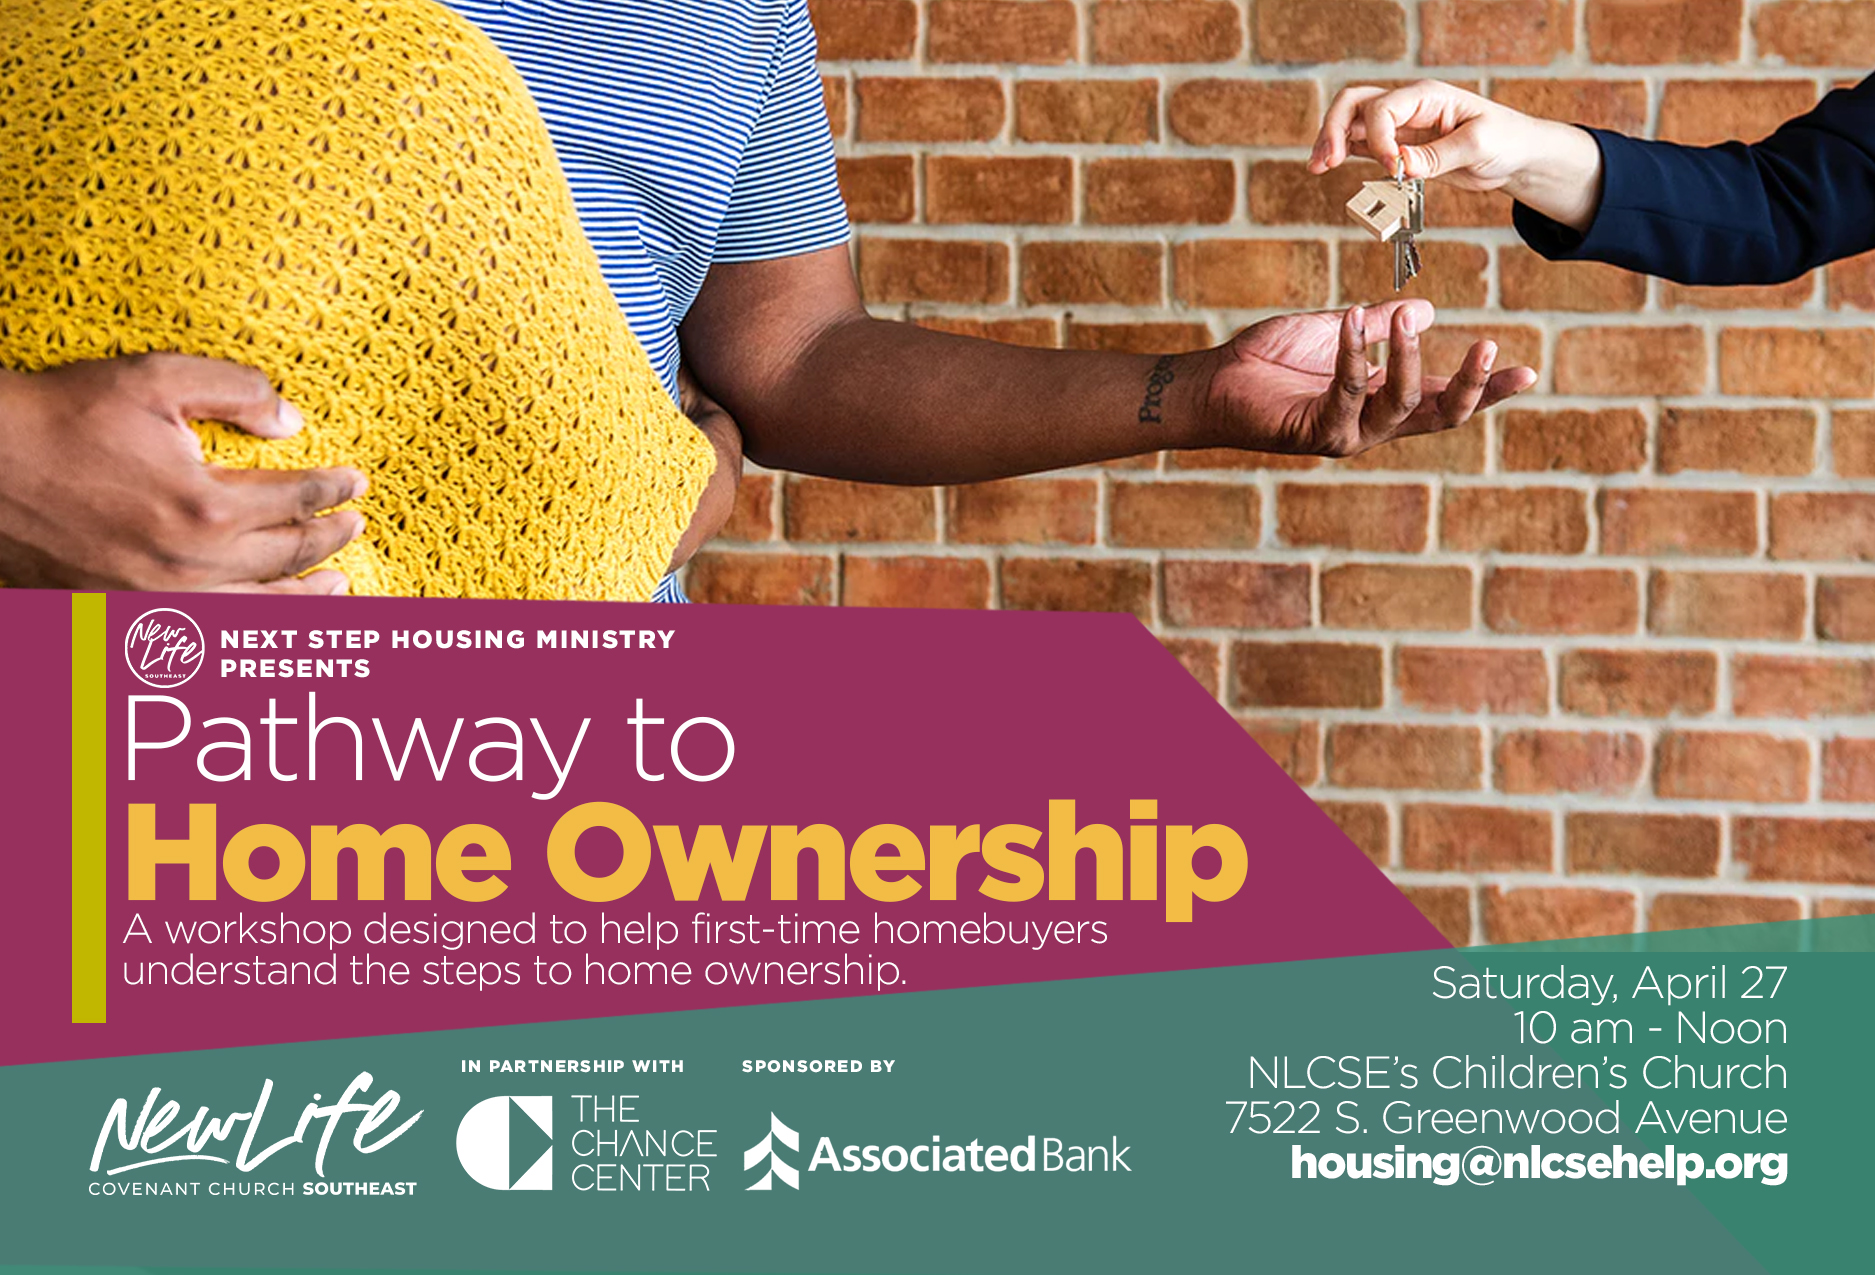 Outreach_Next Step Pathway to Home Ownership Postcard.jpg